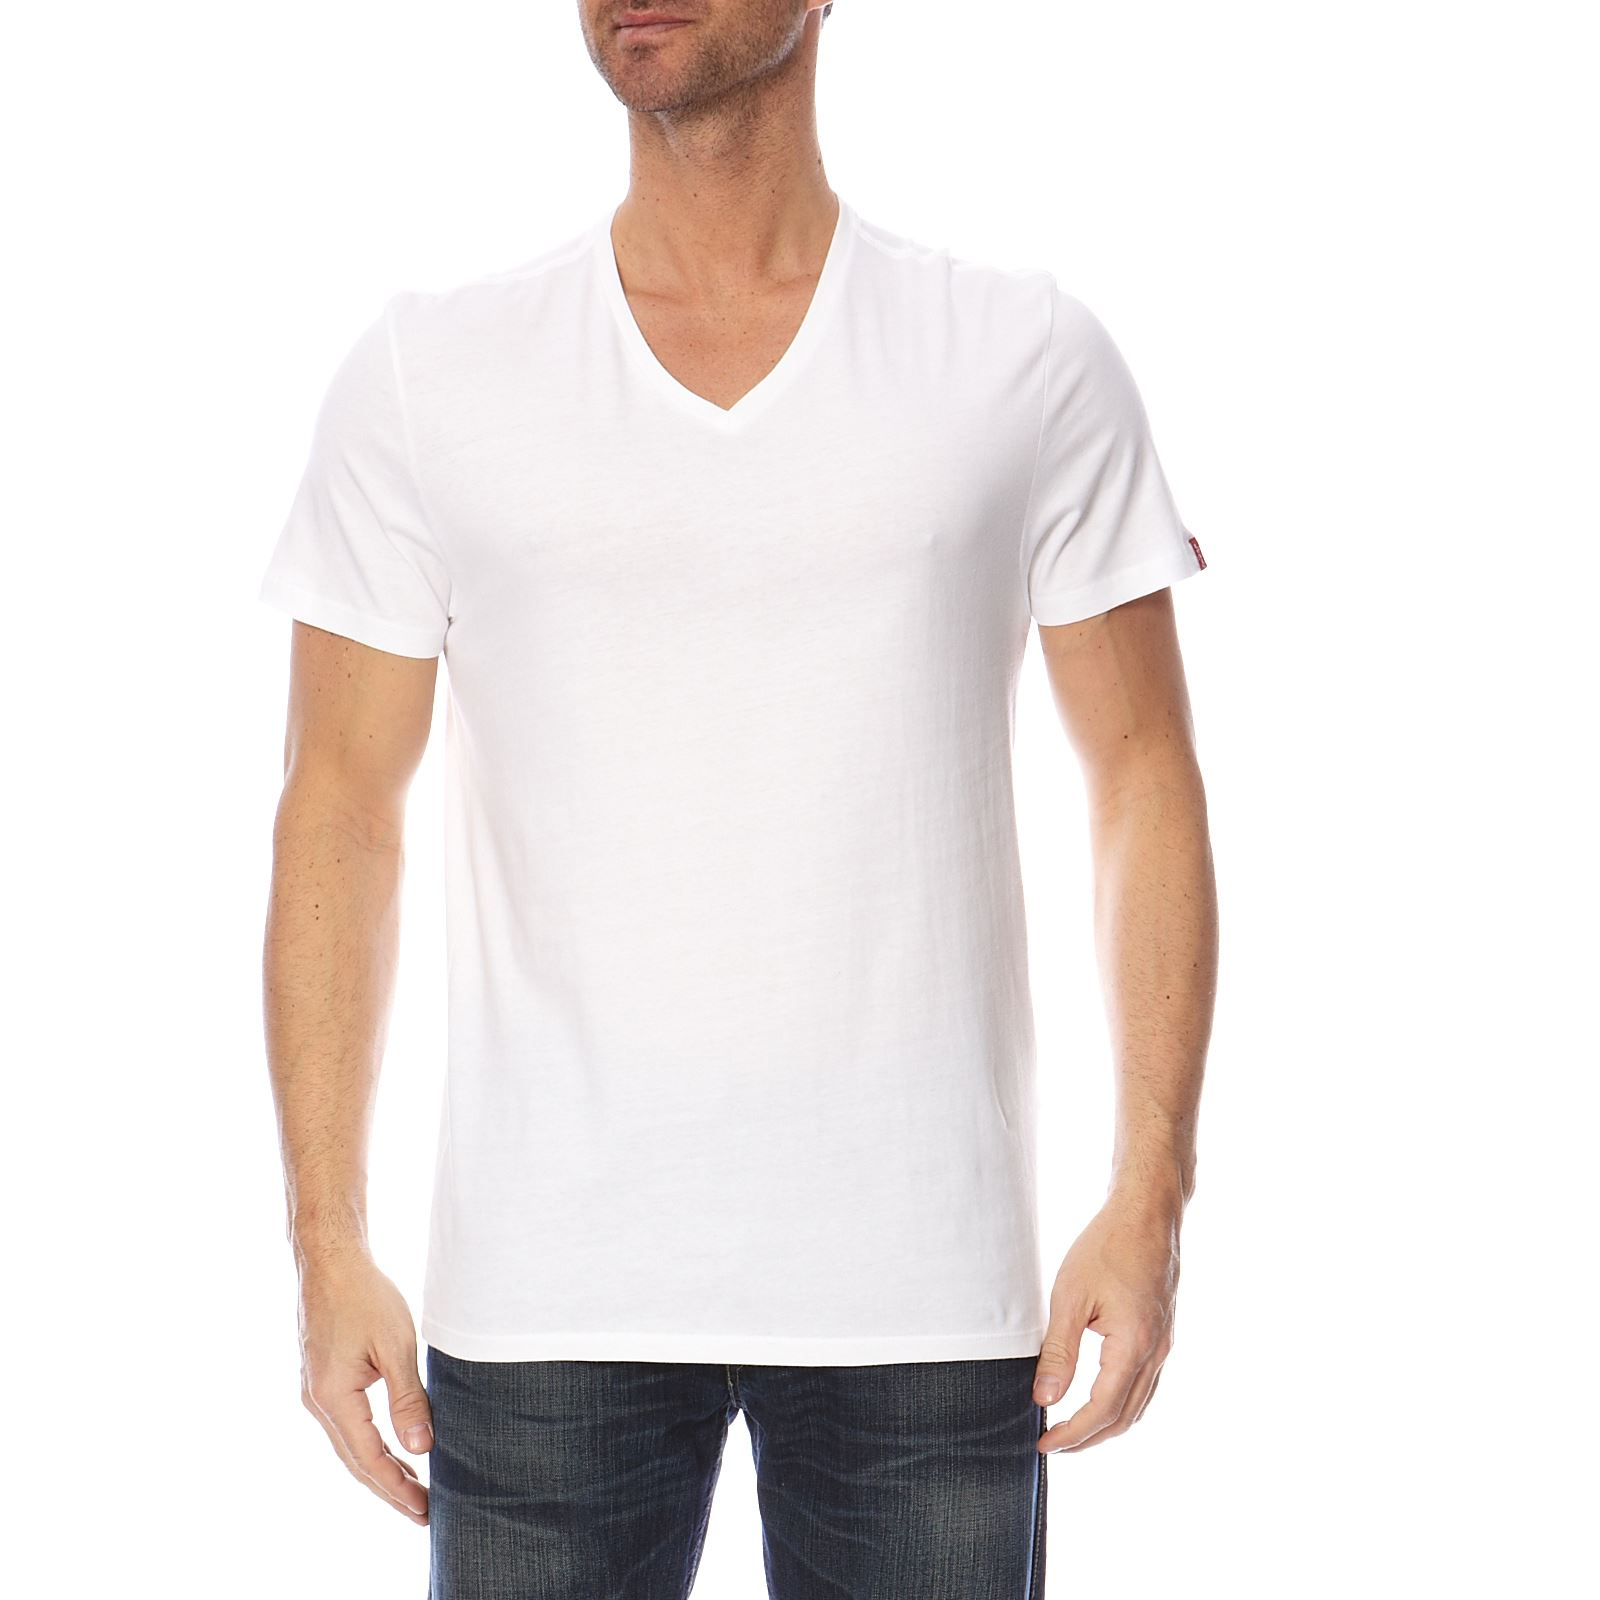 Et Fit T Gris shirts Blanc De Slim Levi's 2 Lot 4CZwxAq